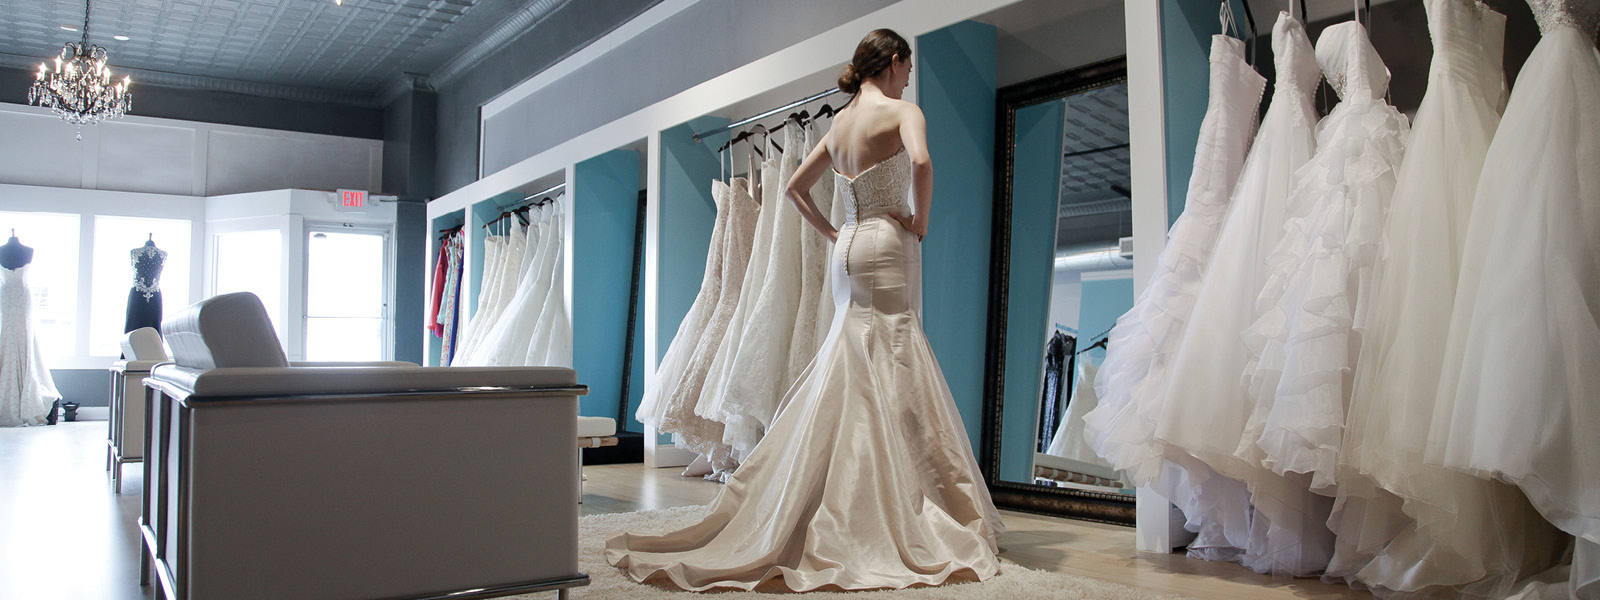 bridalboutiquetx shop wedding dresses